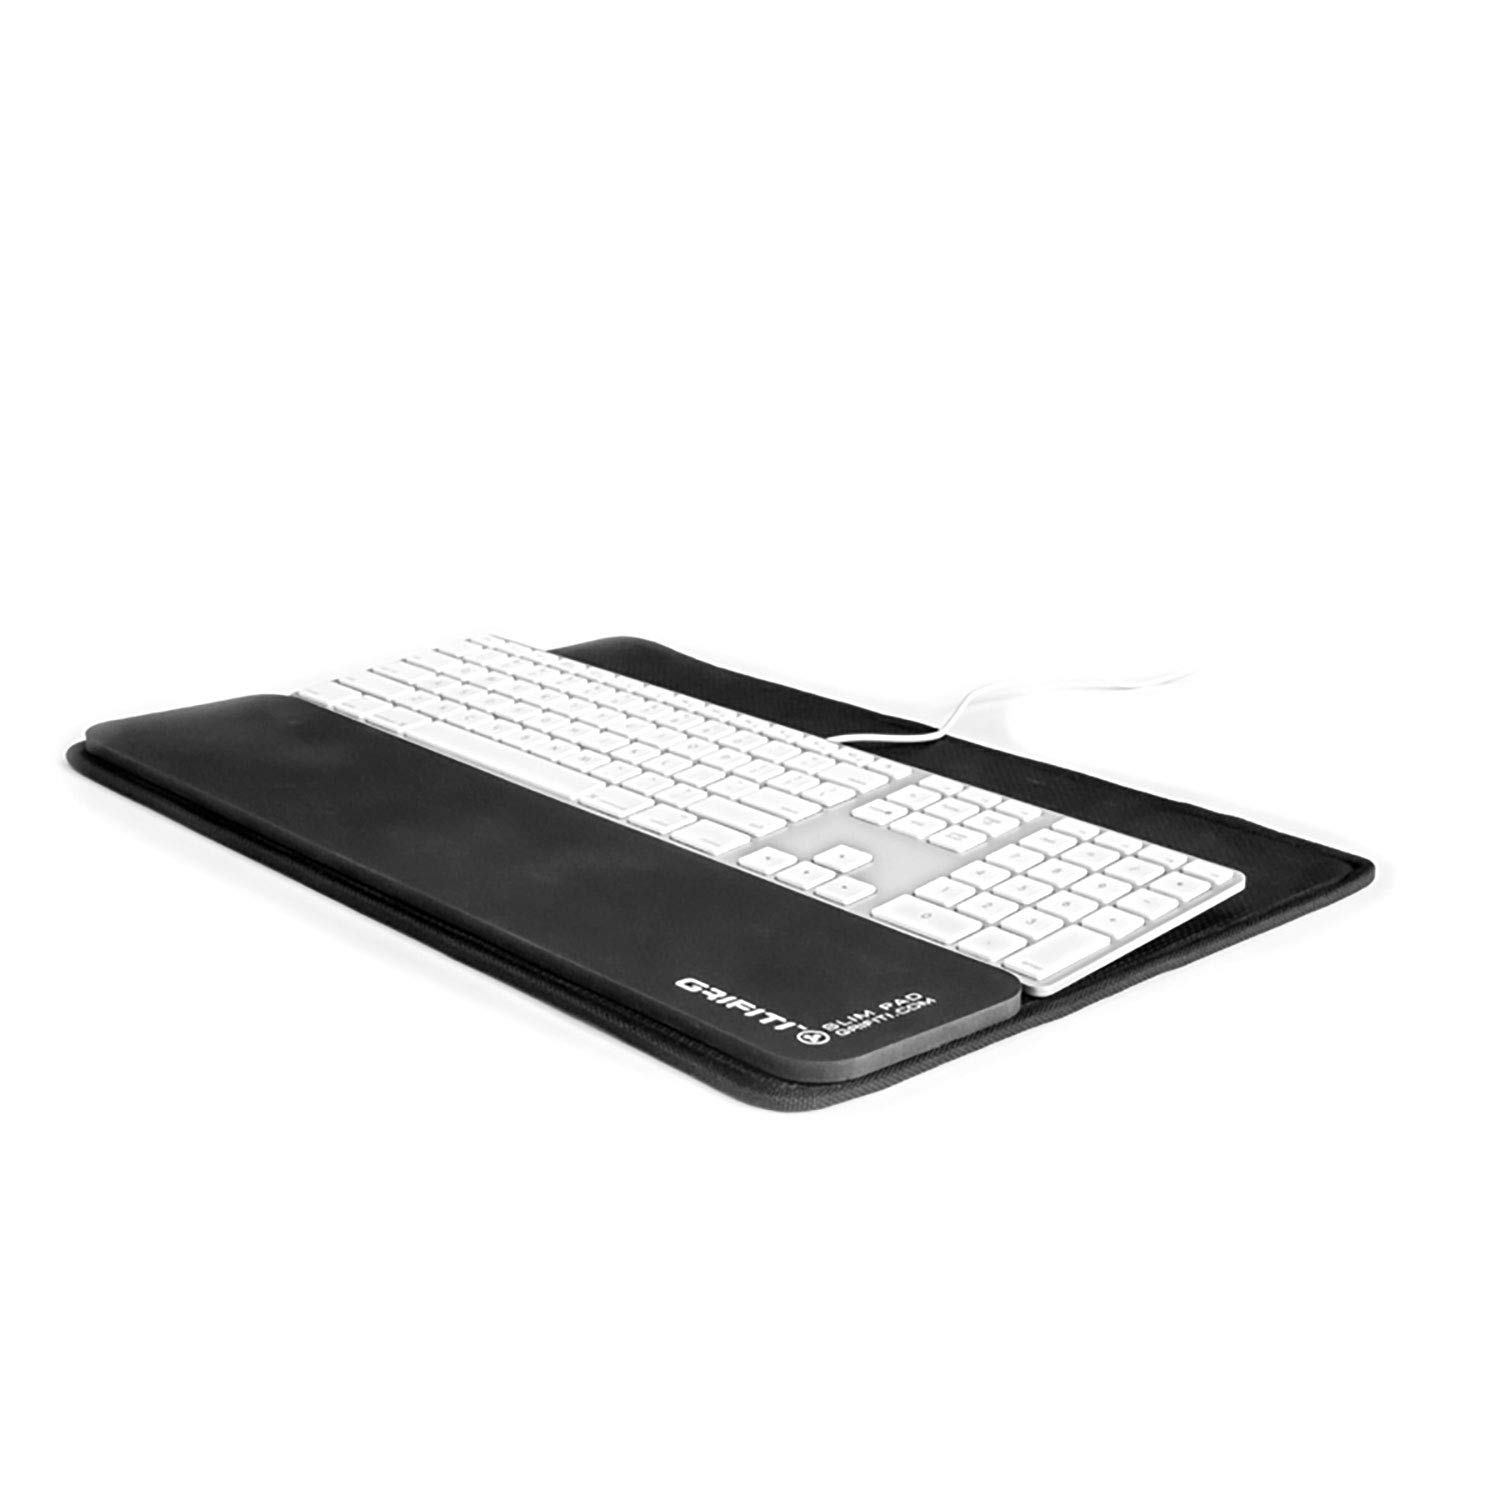 GRIFITI Platform Slim Wrist Pad 17 Home Office Deck 17 Keyboard Platform and Slim Wrist Pad 17 Wrist Rest for 17 Inch Slim Keyboards